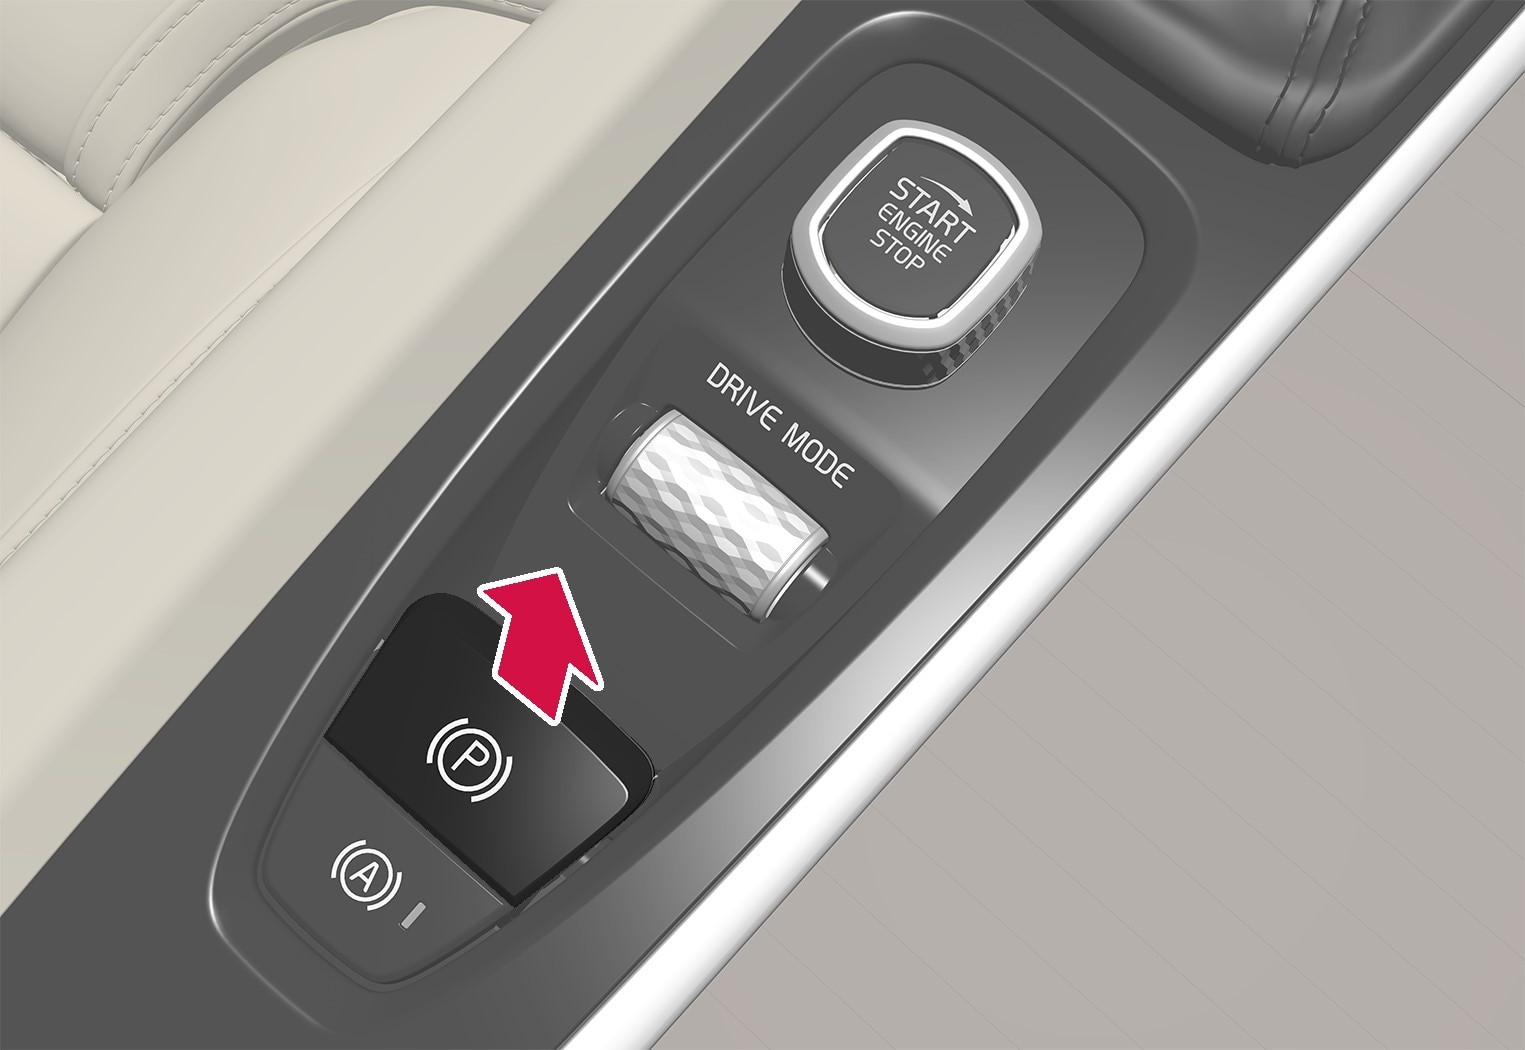 P5-1717-ALL-Parking brake activate